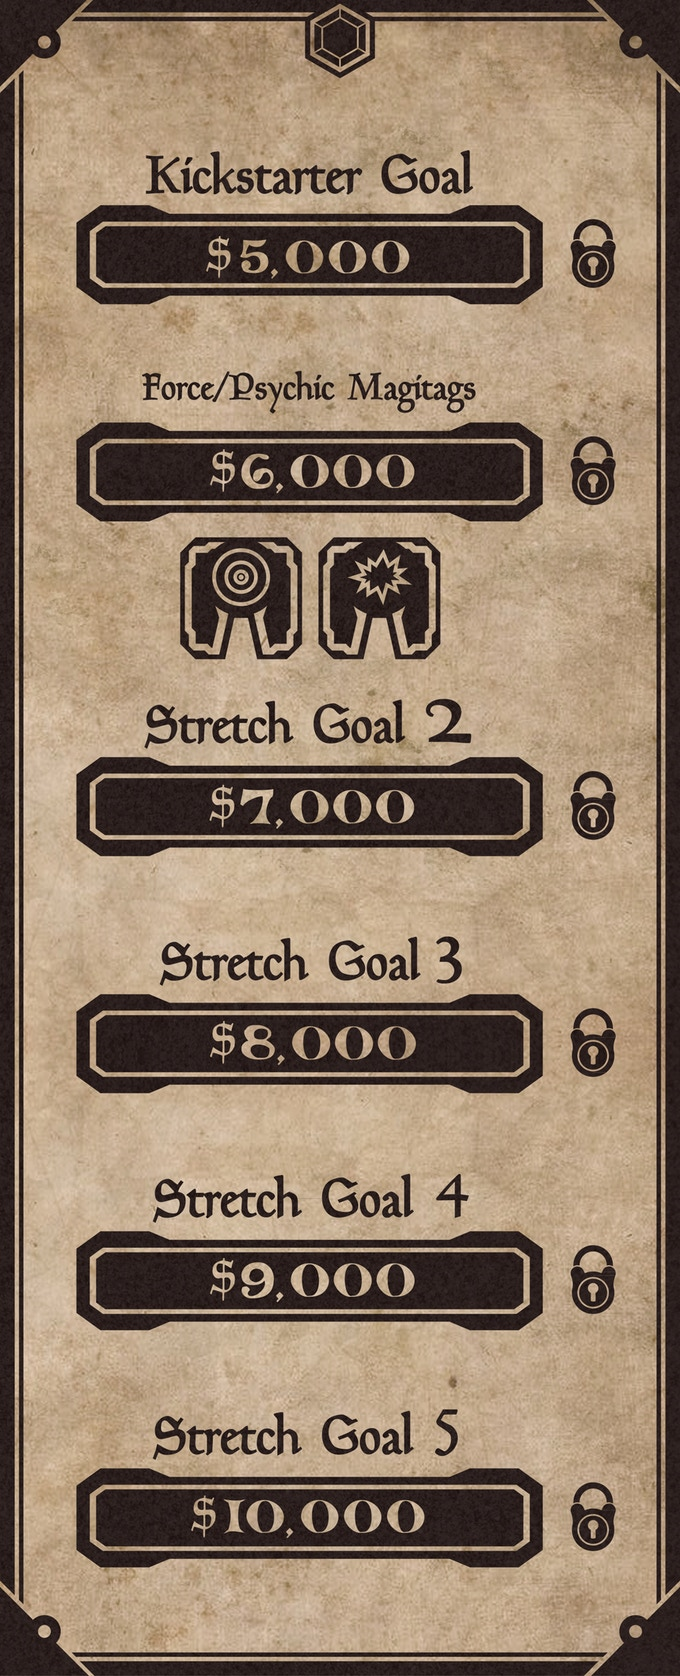 Our Stretch Goals will bring enhancements and other improvements to the project.